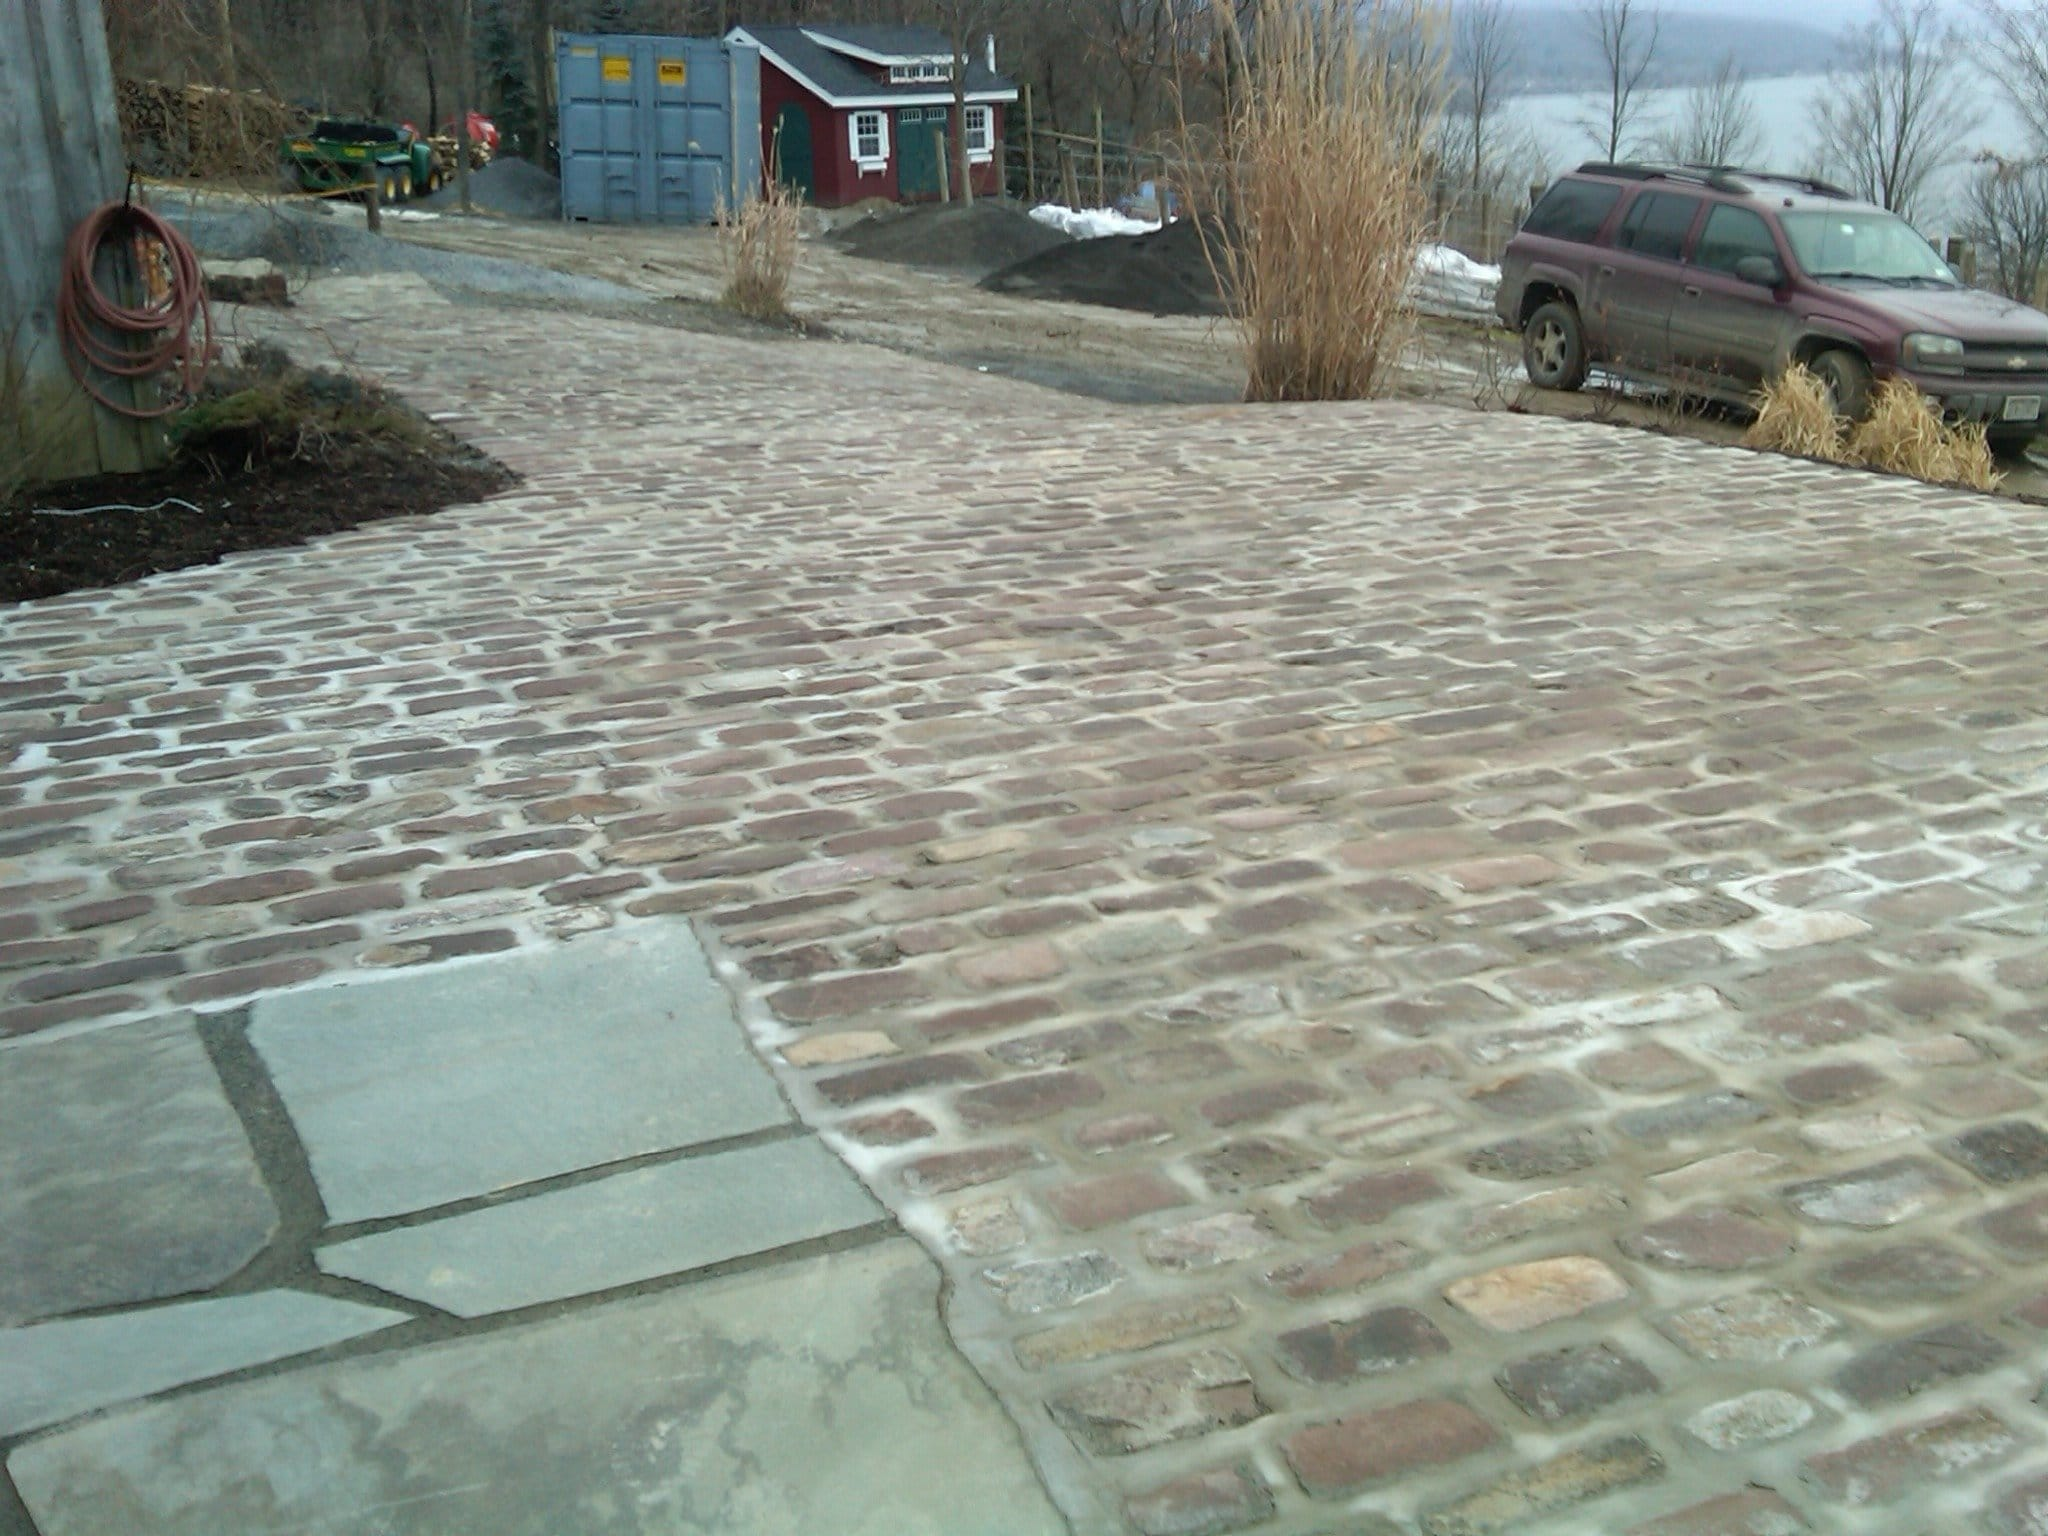 You can see a close-up photo of the Old English Cobblestone paving outside in Fingerlakes.